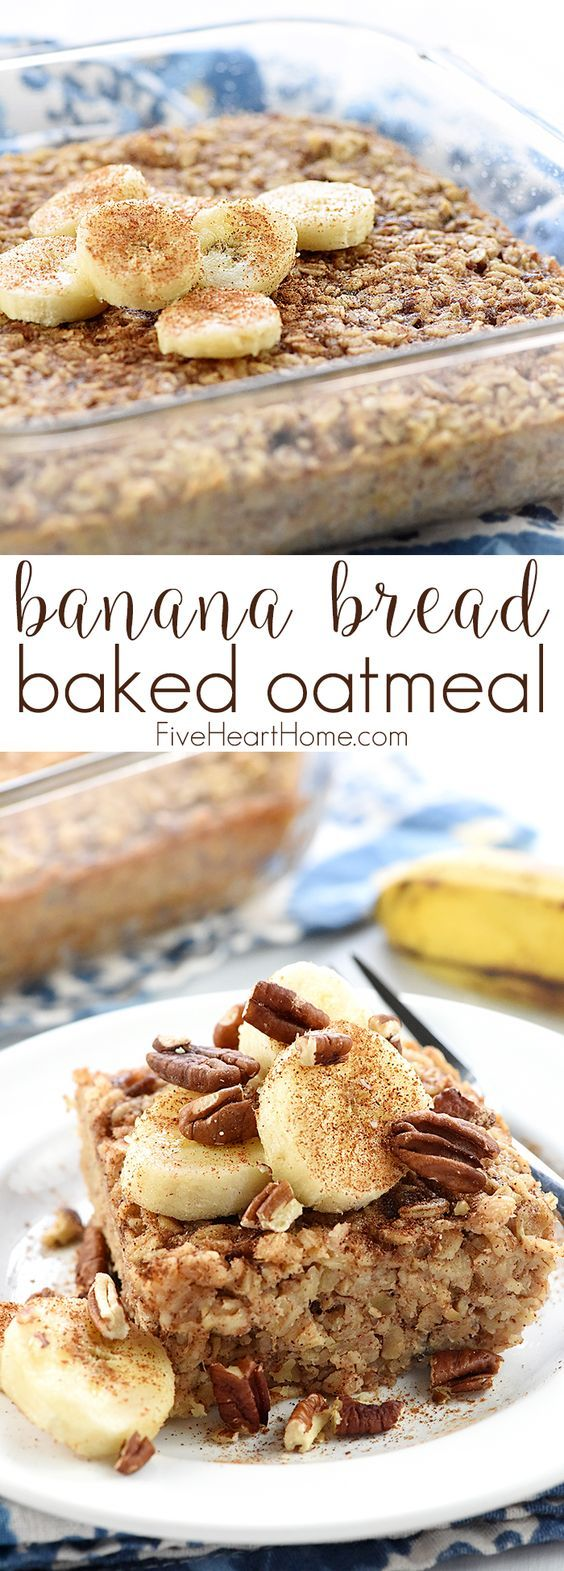 Banana Bread Baked Oatmeal ~ boasts the delicious flavor of banana bread, but it's made with wholesome oats, pecans, and coconut oil for a healthy, filling breakfast or brunch recipe! | FiveHeartHome.com